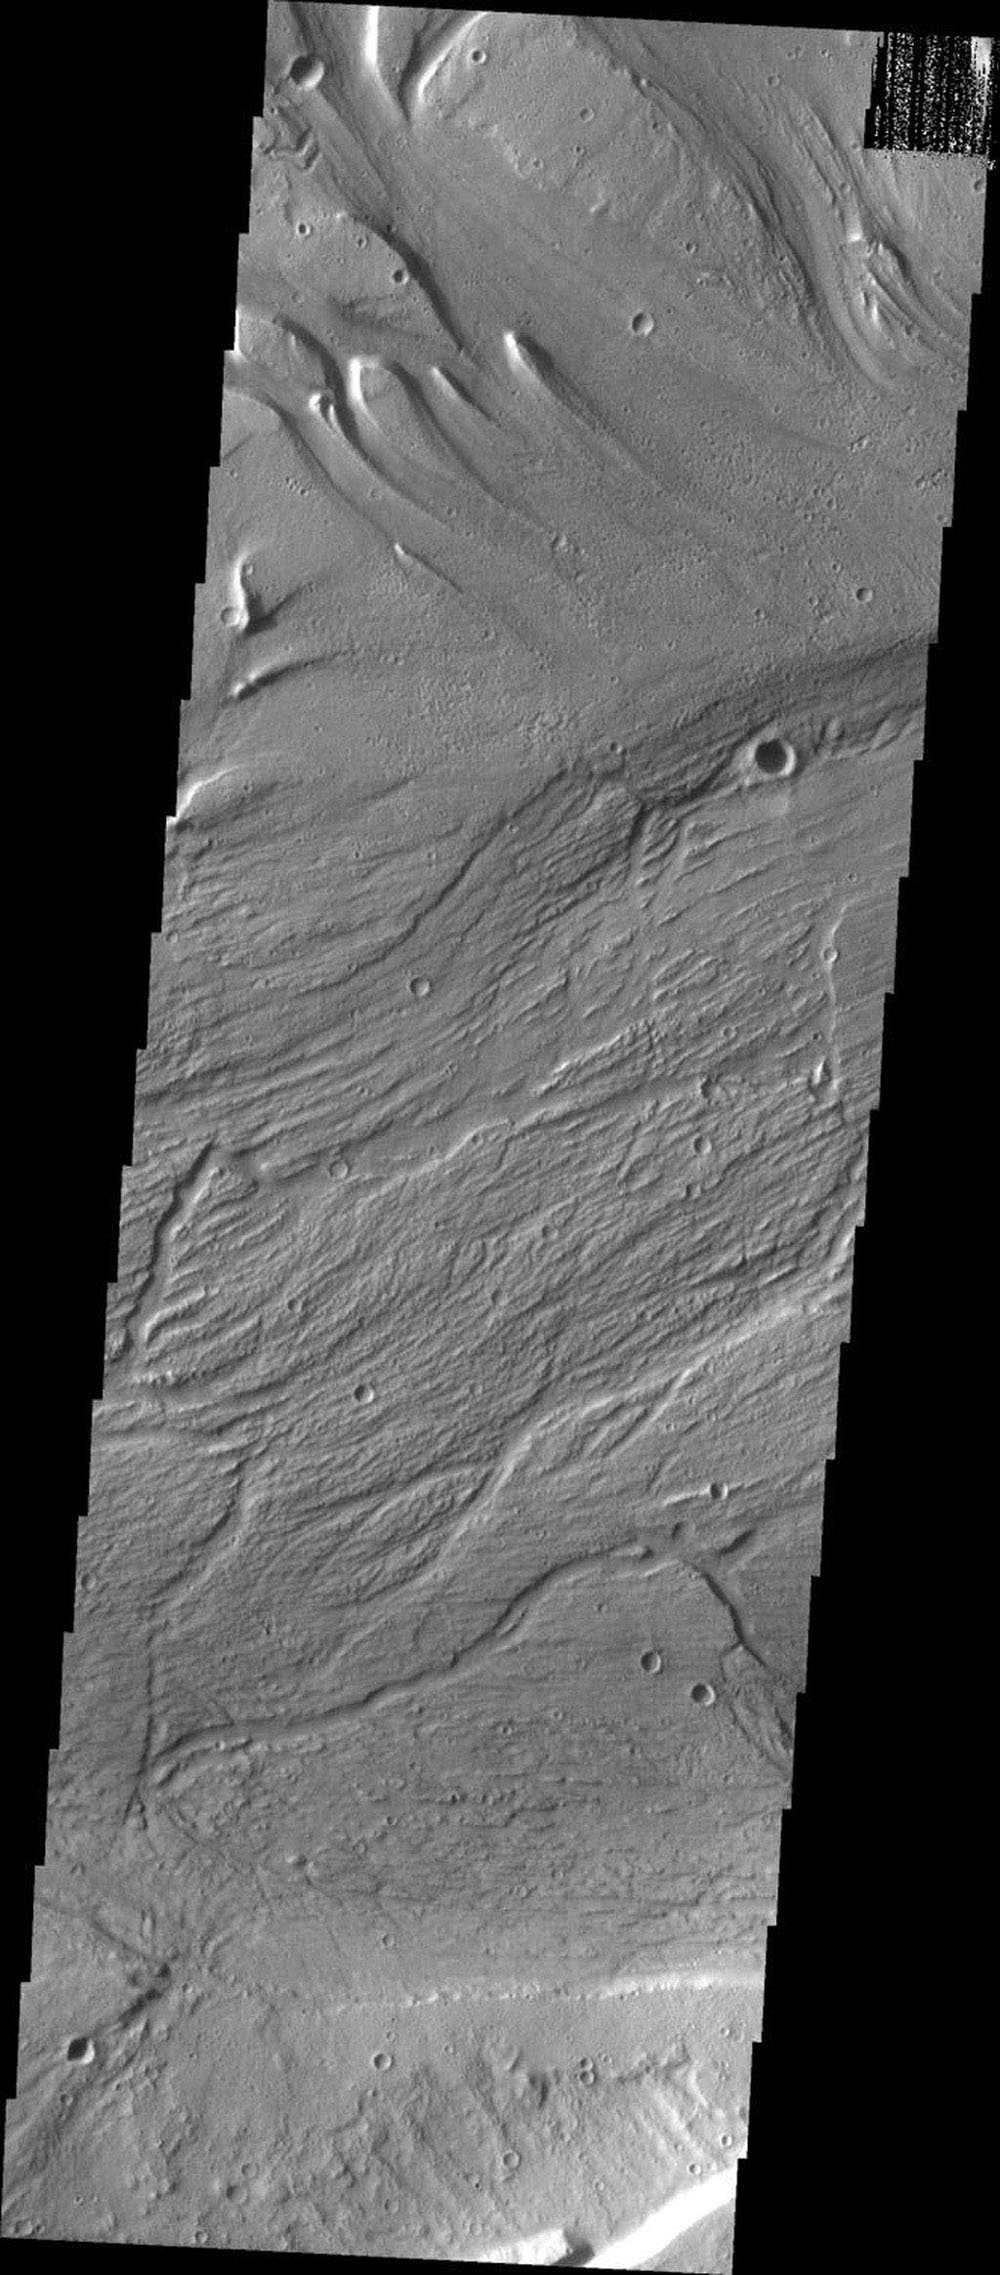 This image from NASA's Mars Odyssey spacecraft shows the Kasei Vallis complex on Mars which contains two main channels that run east-west across Tempe Terra and empty into Chryse Planitia.